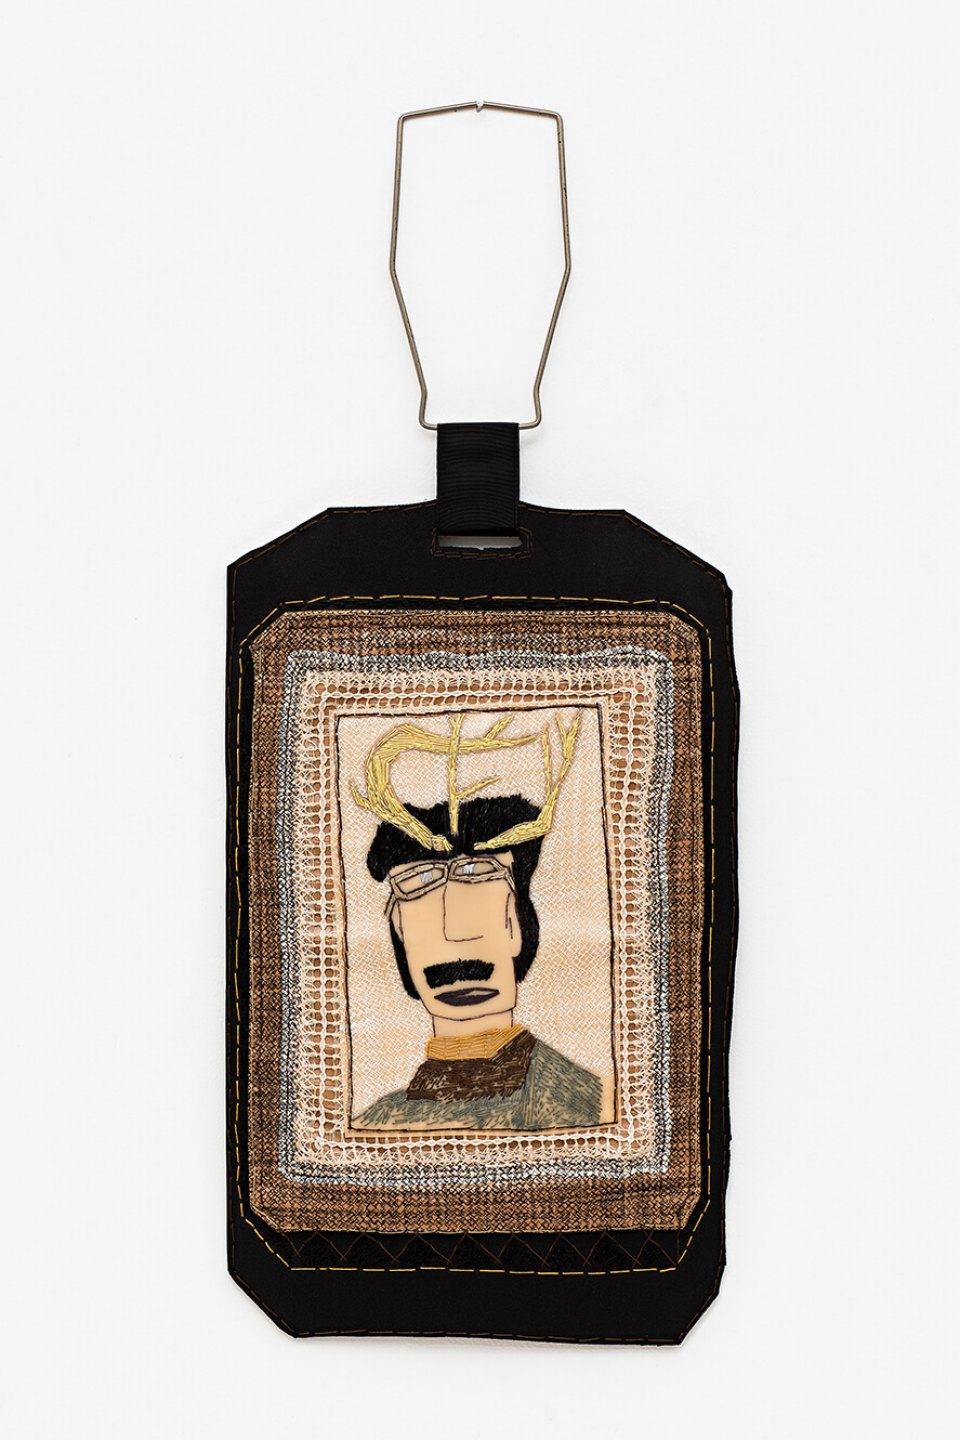 f. marquespeteado, <em>Homem Veado do Mato Grosso do Sul, from Camafeu e broches de reis, santos e homens veados series</em>, 2004, machine and hand embroidered wool, cottons and PVCs collage on a neoprene sheet,  handled by old lantern holder, 98 × 41 cm - Mendes Wood DM